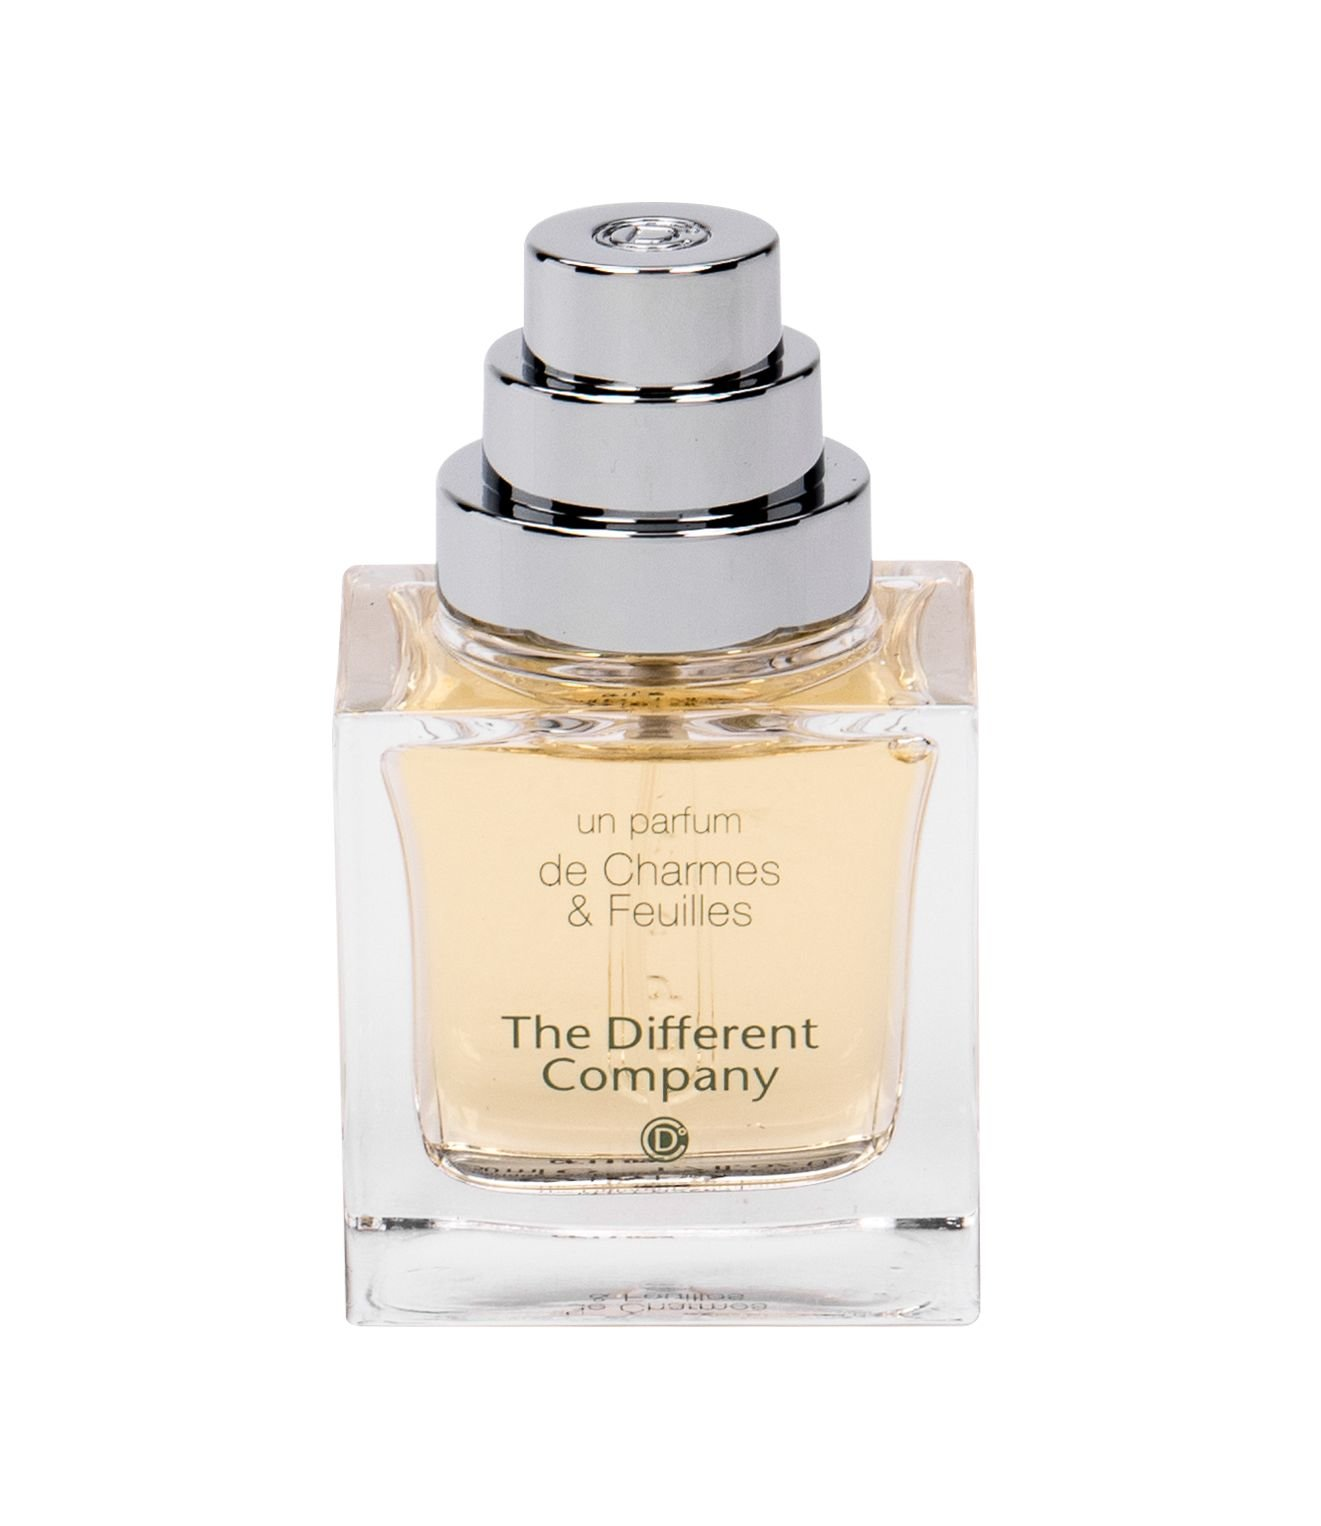 The Different Company Un Parfum de Charmes et Feuilles Eau de Toilette 50ml